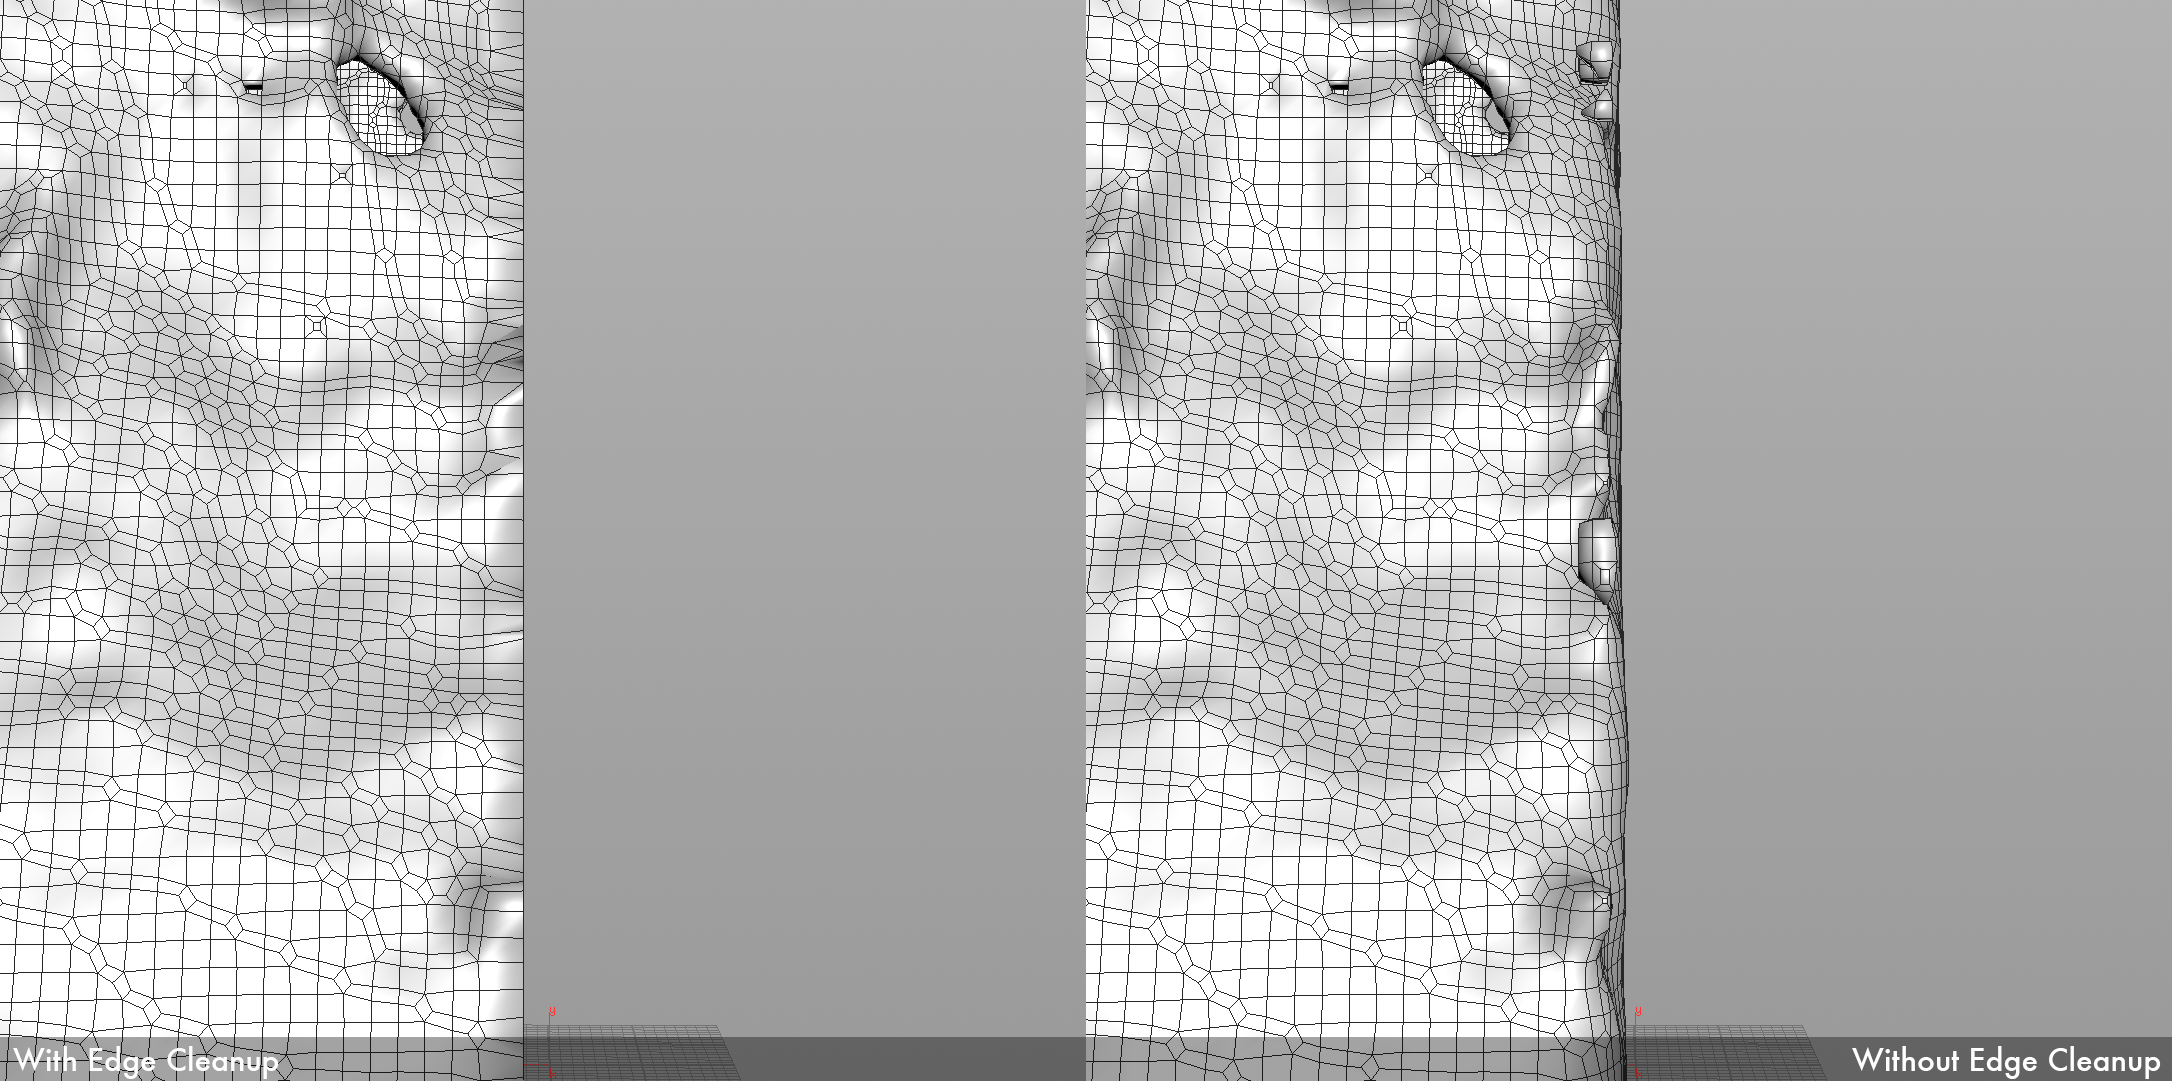 The mesh on the left has a cleaned up, stable liquid-solid interface. The mesh on the right is the same mesh as the one on the left, but before going through cleanup.